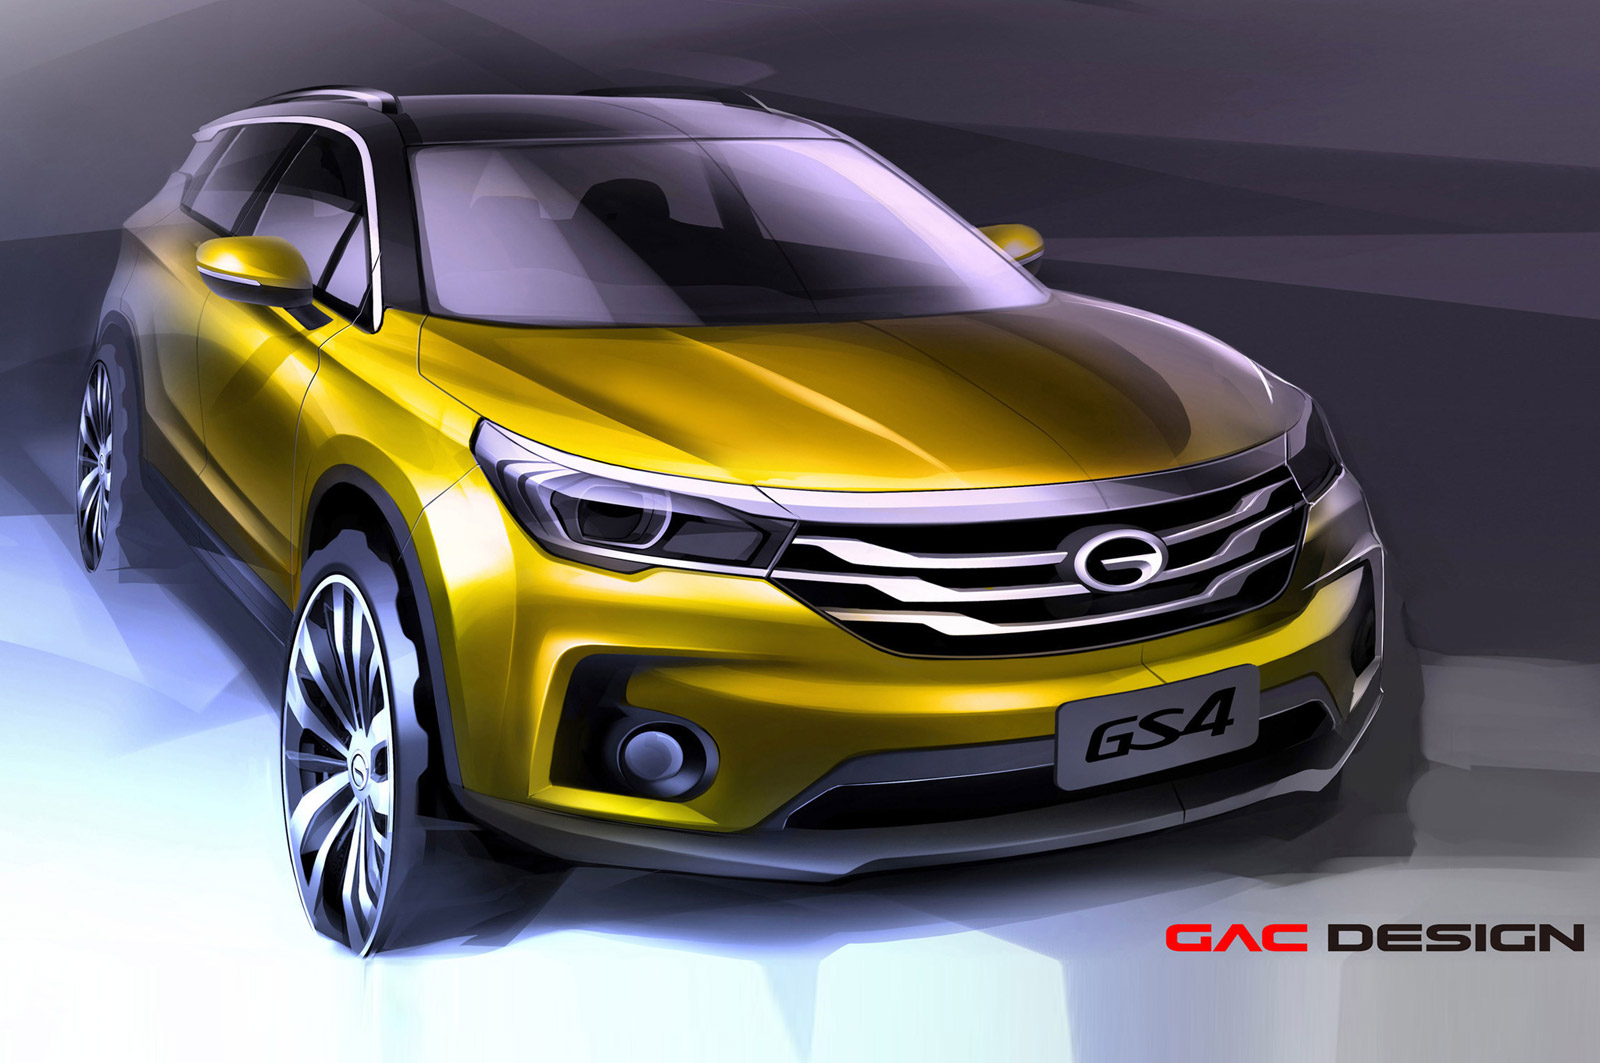 first remote car with 1096125 Chinas Gac Motor To Present Gs4 Crossover At 2015 Detroit Auto Show on 1096125 chinas Gac Motor To Present Gs4 Crossover At 2015 Detroit Auto Show together with Tamo Racemo 2017 Geneva Motor Show 259811 additionally 207944 besides The Awesome Rc Audi R8 V10 Supercar Built With Lego Bricks in addition 207601.